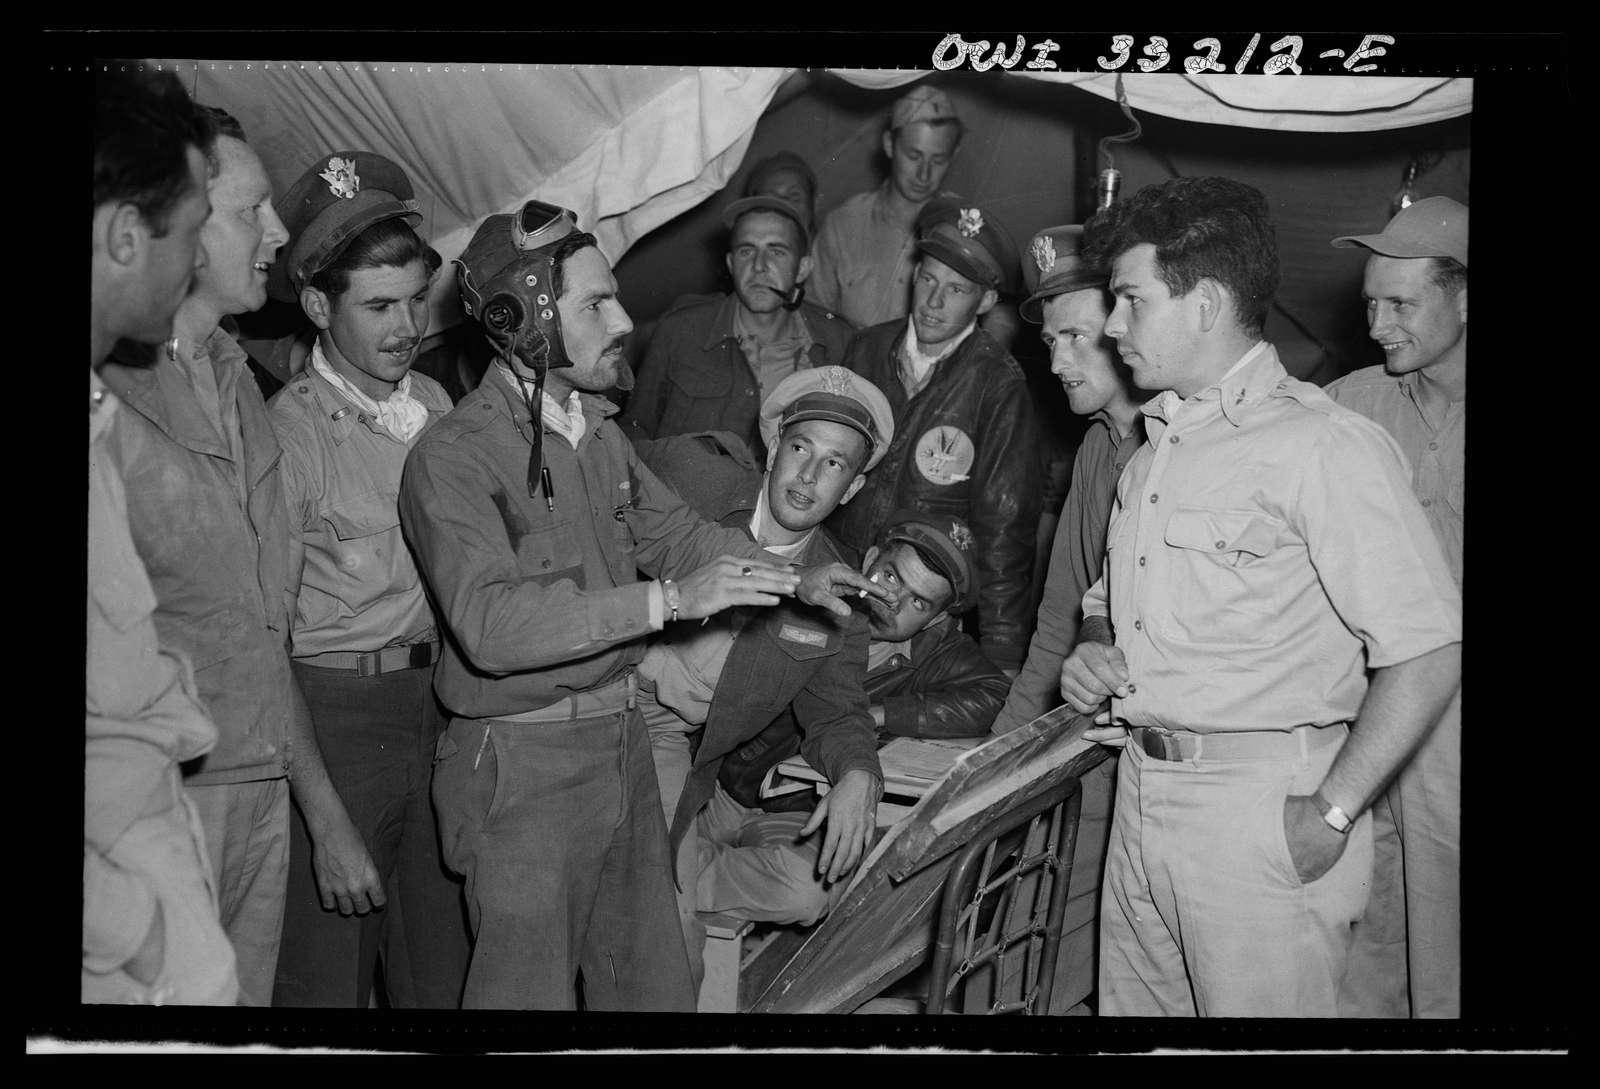 Lieutenant Richard E. Duffey, twenty-four, of Walled Lake, Michigan, giving an account at the 57th Fighter Group base in Tunisia of the actions of his group during the air battle of April 18, in which four squadrons of the 57th Fighter Group destroyed seventy-four enemy planes. Lieutenant Duffey destroyed five in a single engagement